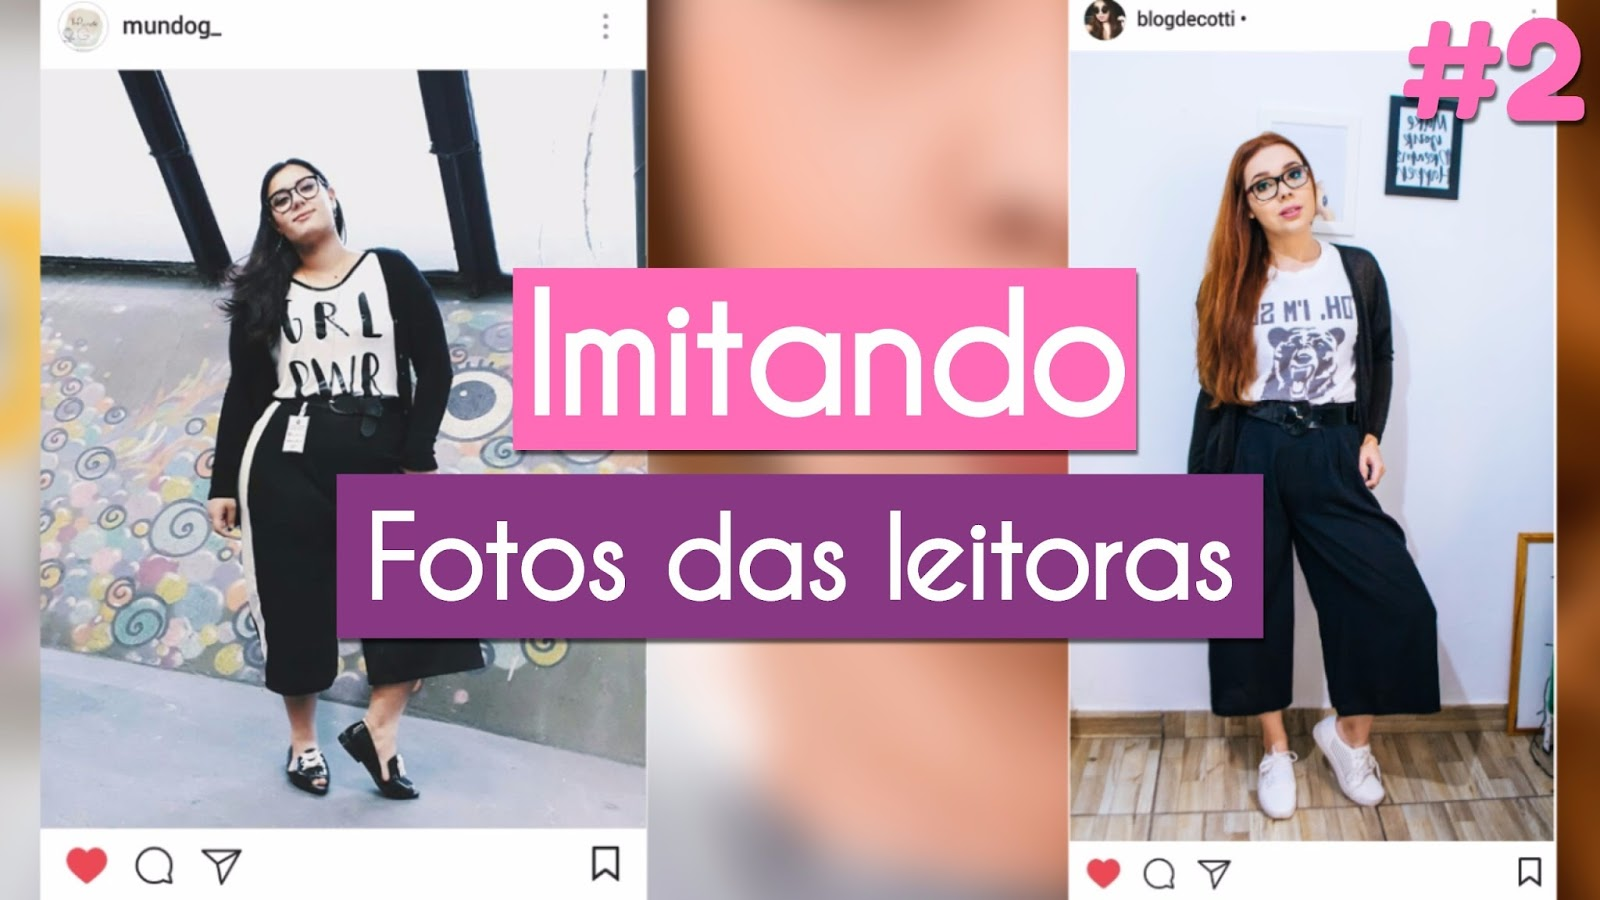 Imitando Fotos Tumblr das Leitoras - Recriando fotos de Inscritos | Parte 2#